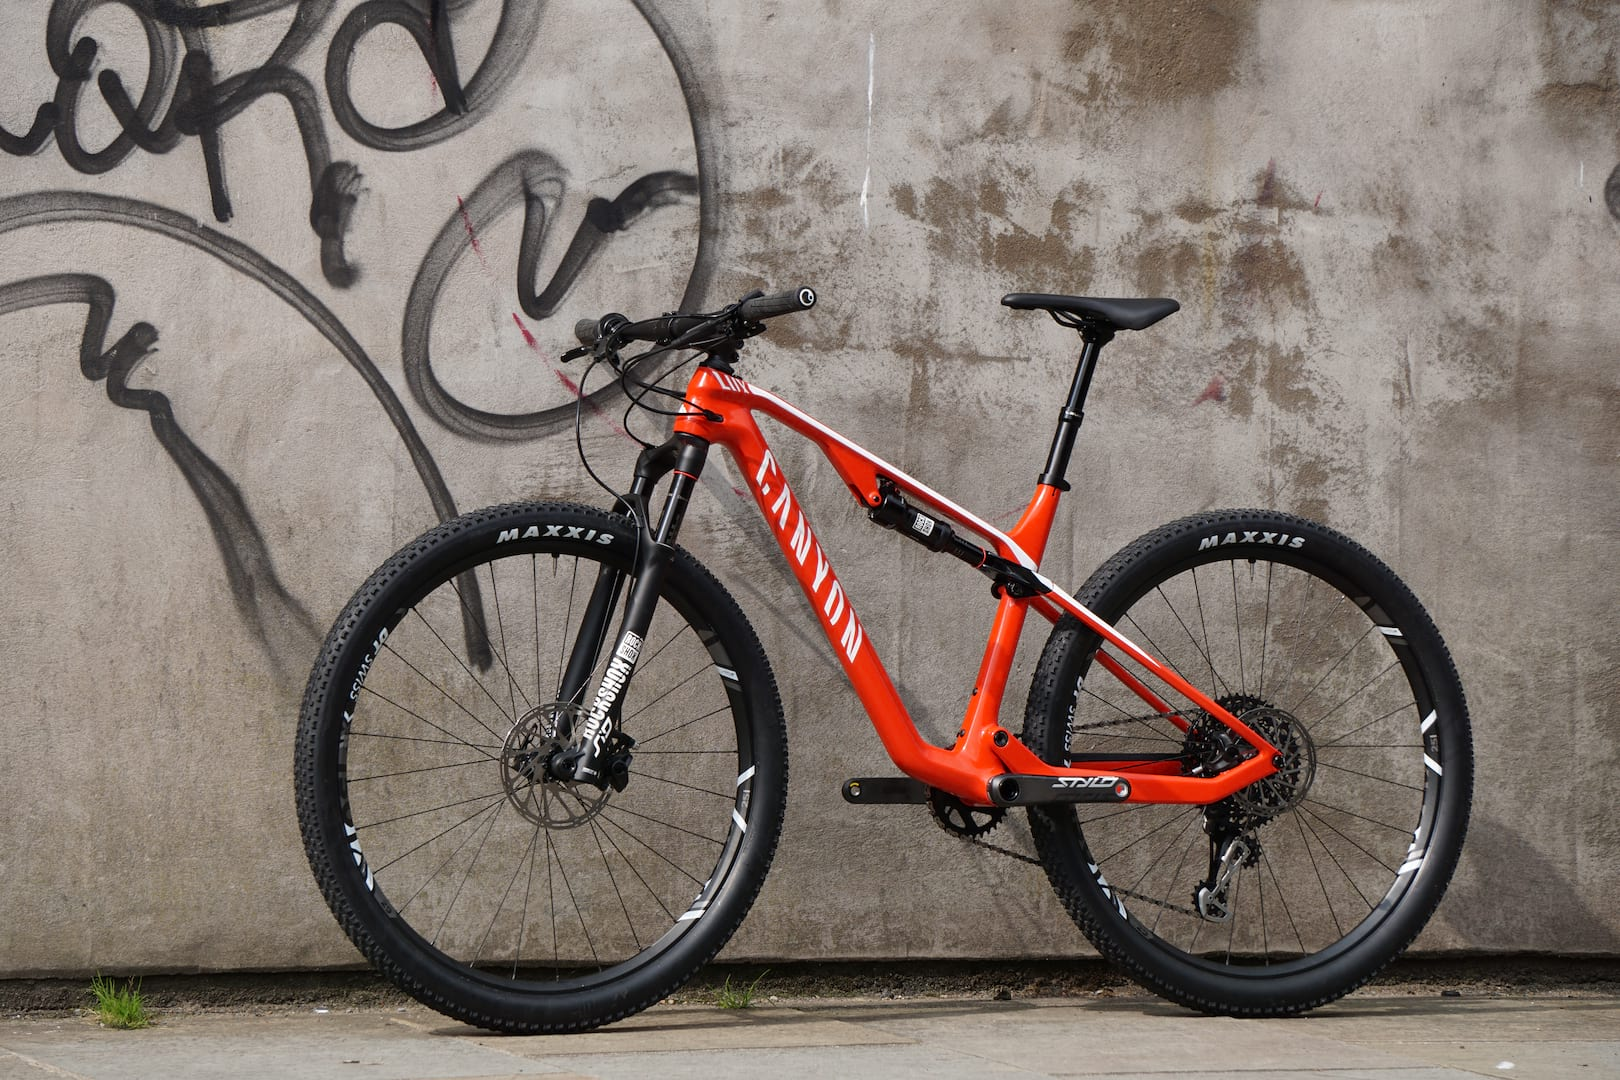 Canyon Lux CF SL 8 0 Pro Race  The Bike Starsky And Hutch